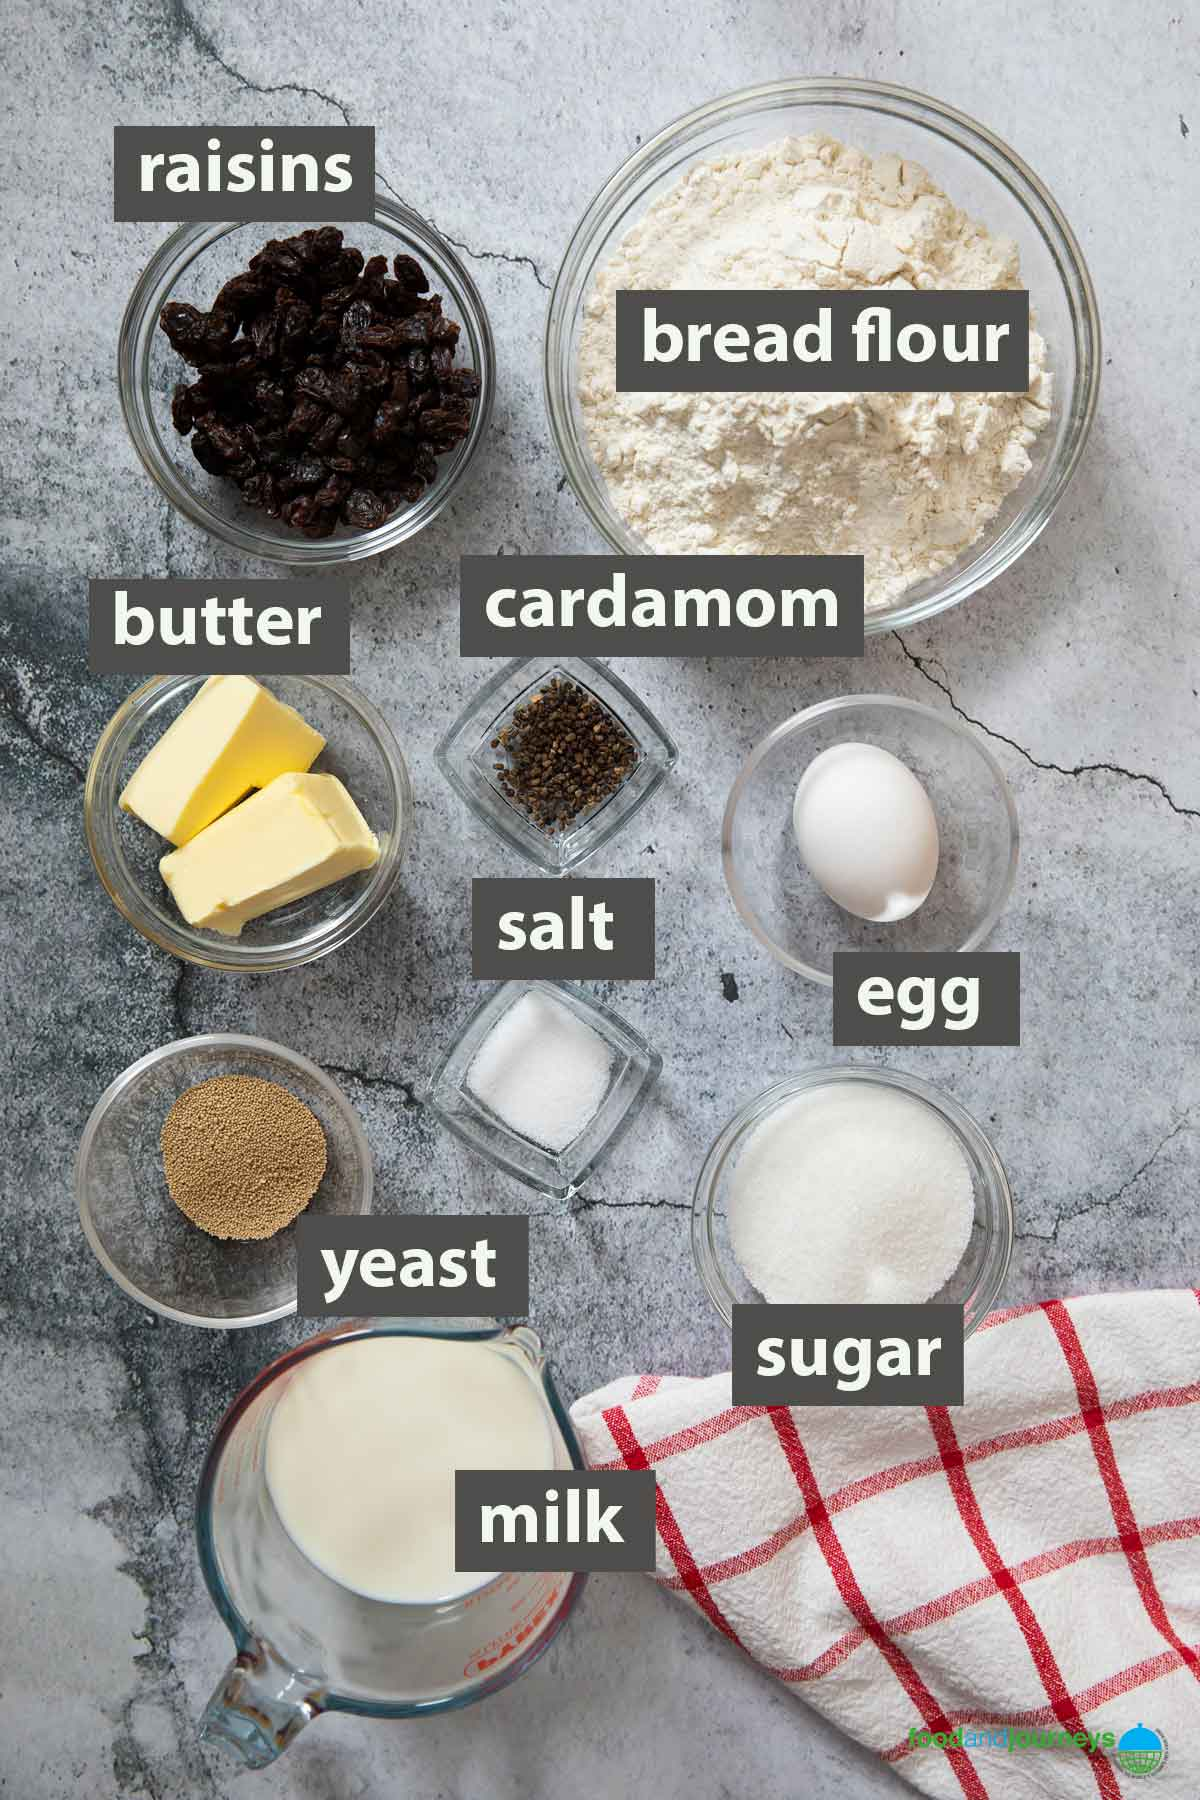 An image showing all the ingredients you need to make Chrismas Bread at home.